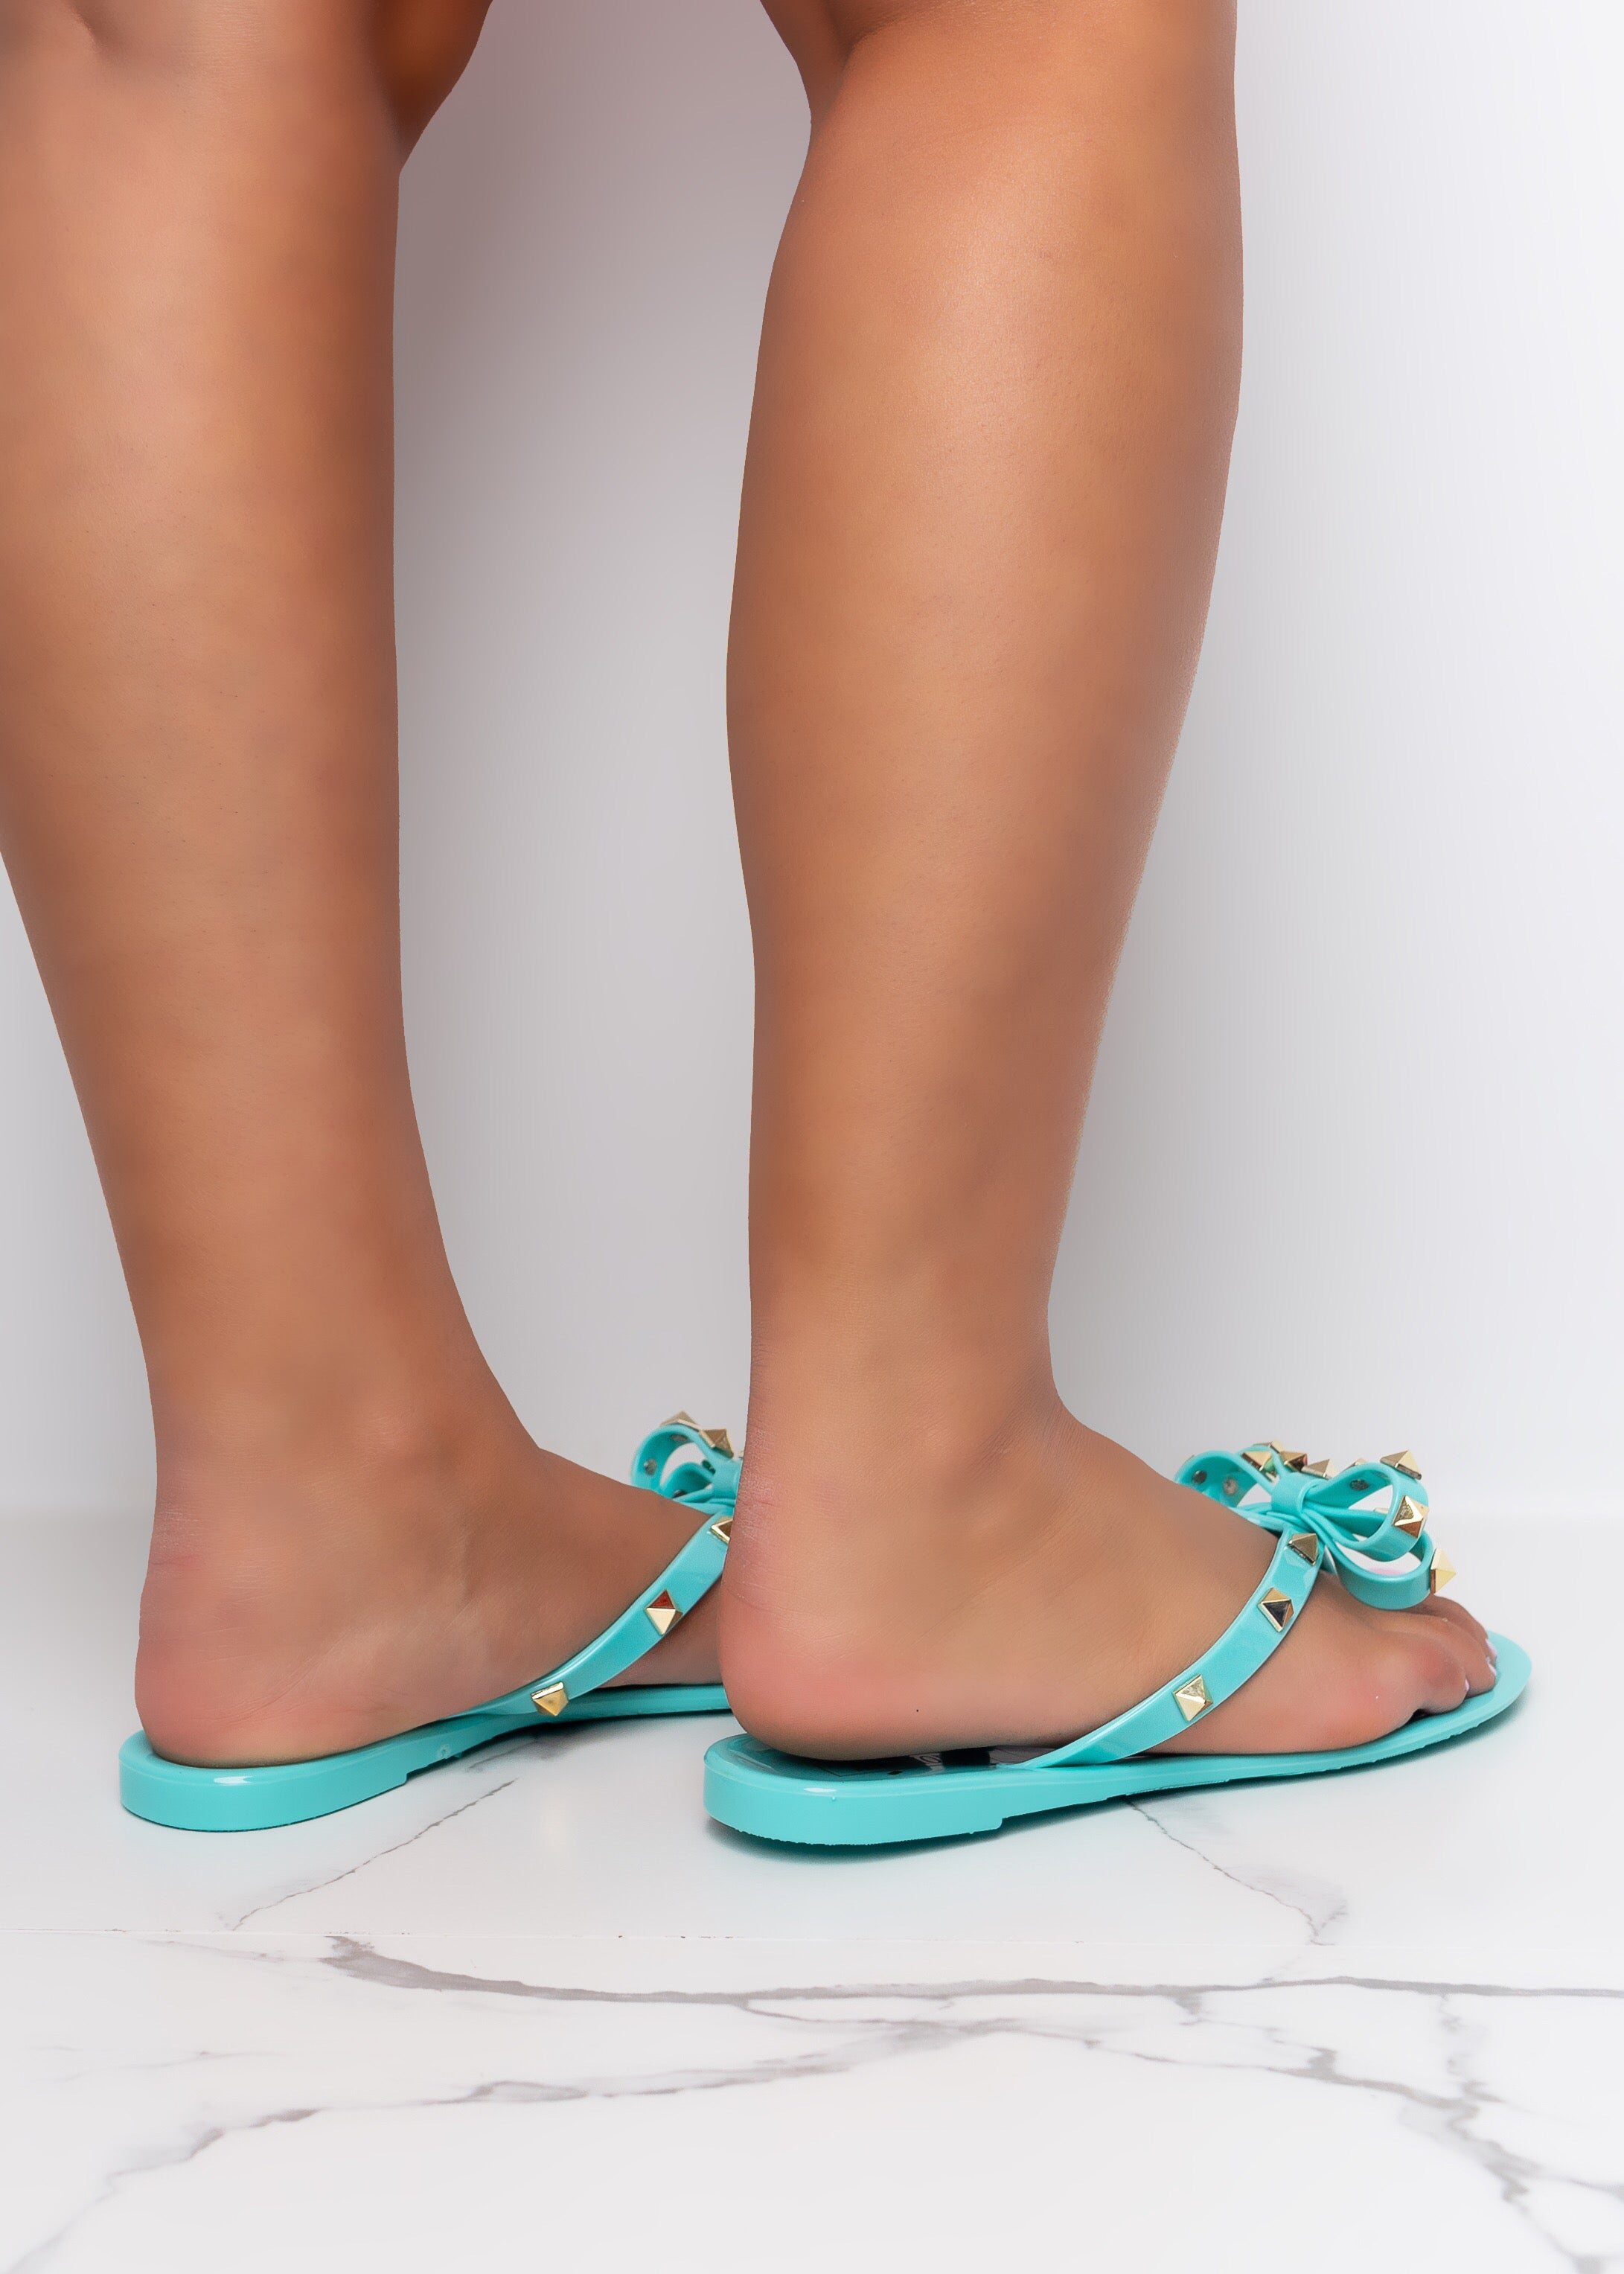 Tie The Knot Turquoise Jelly Stud Sandals